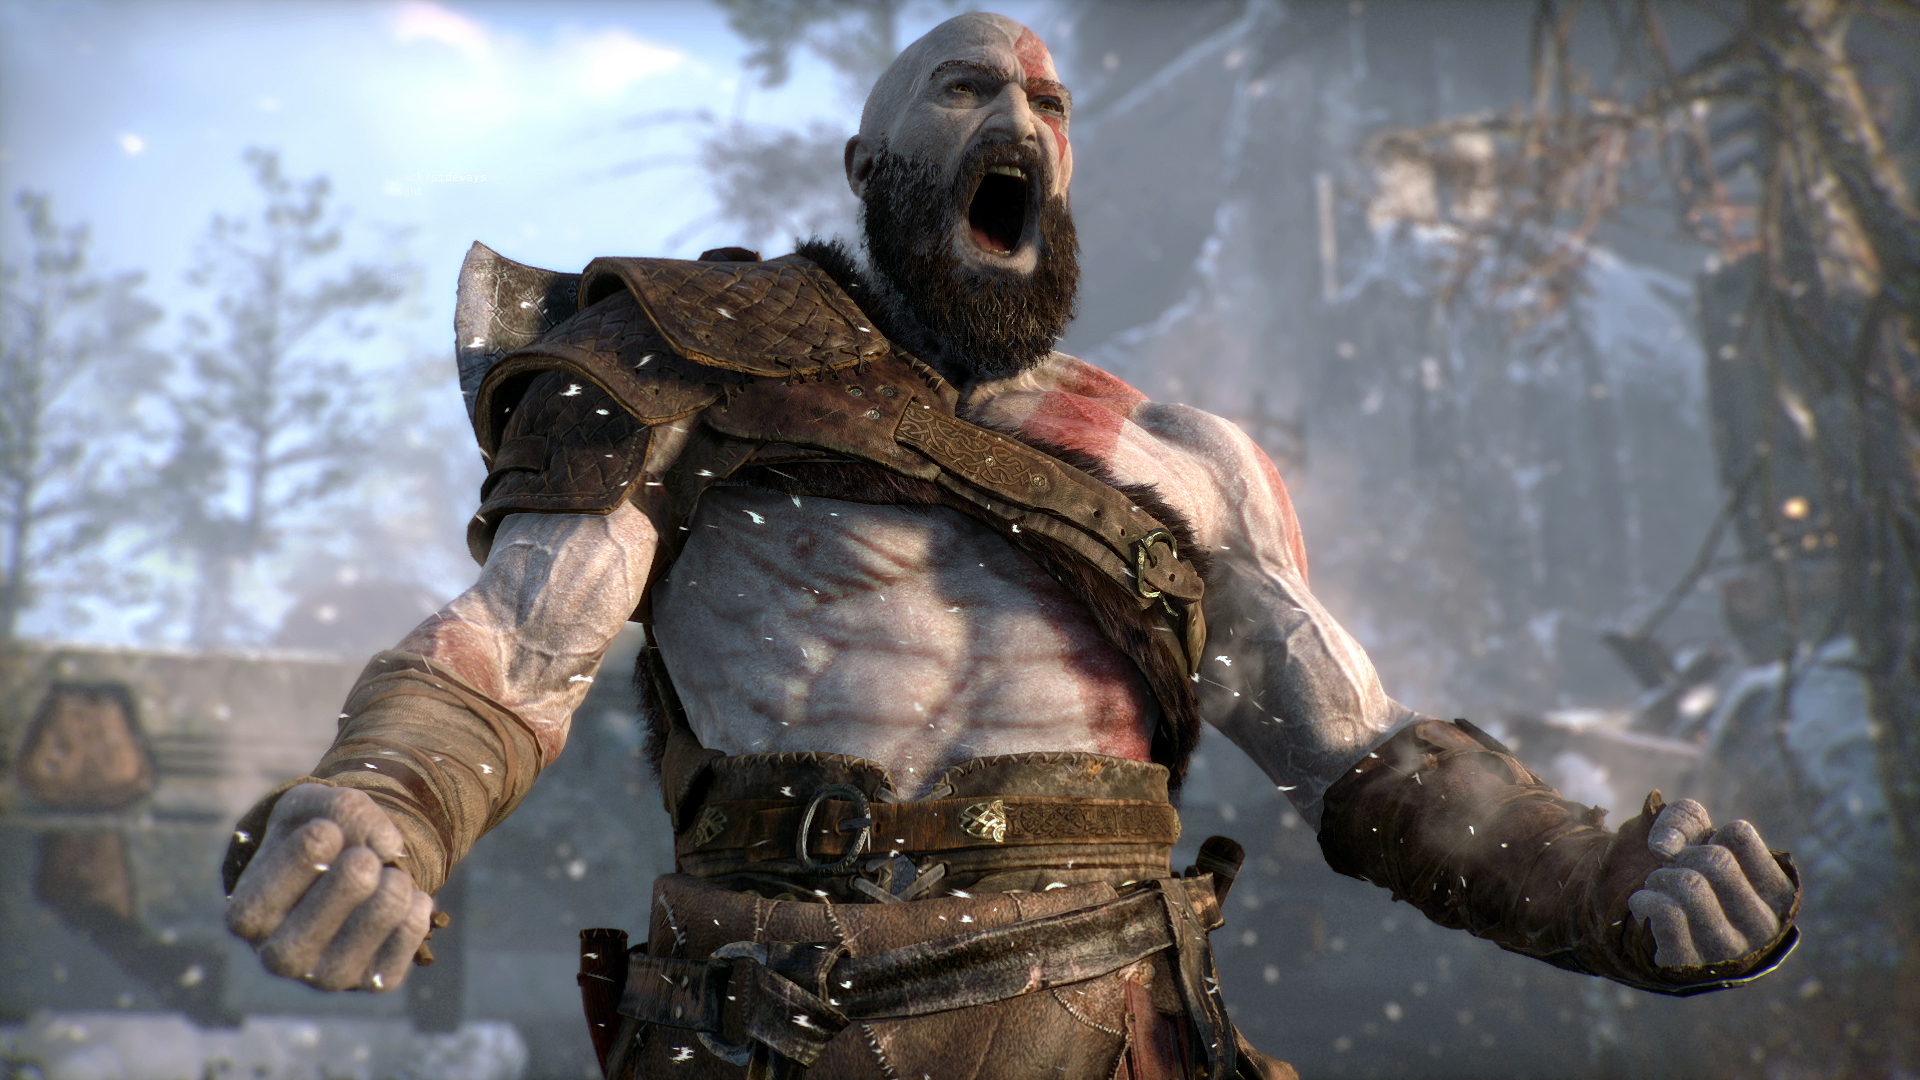 The God of War reboot may have had its release date revealed early screenshot